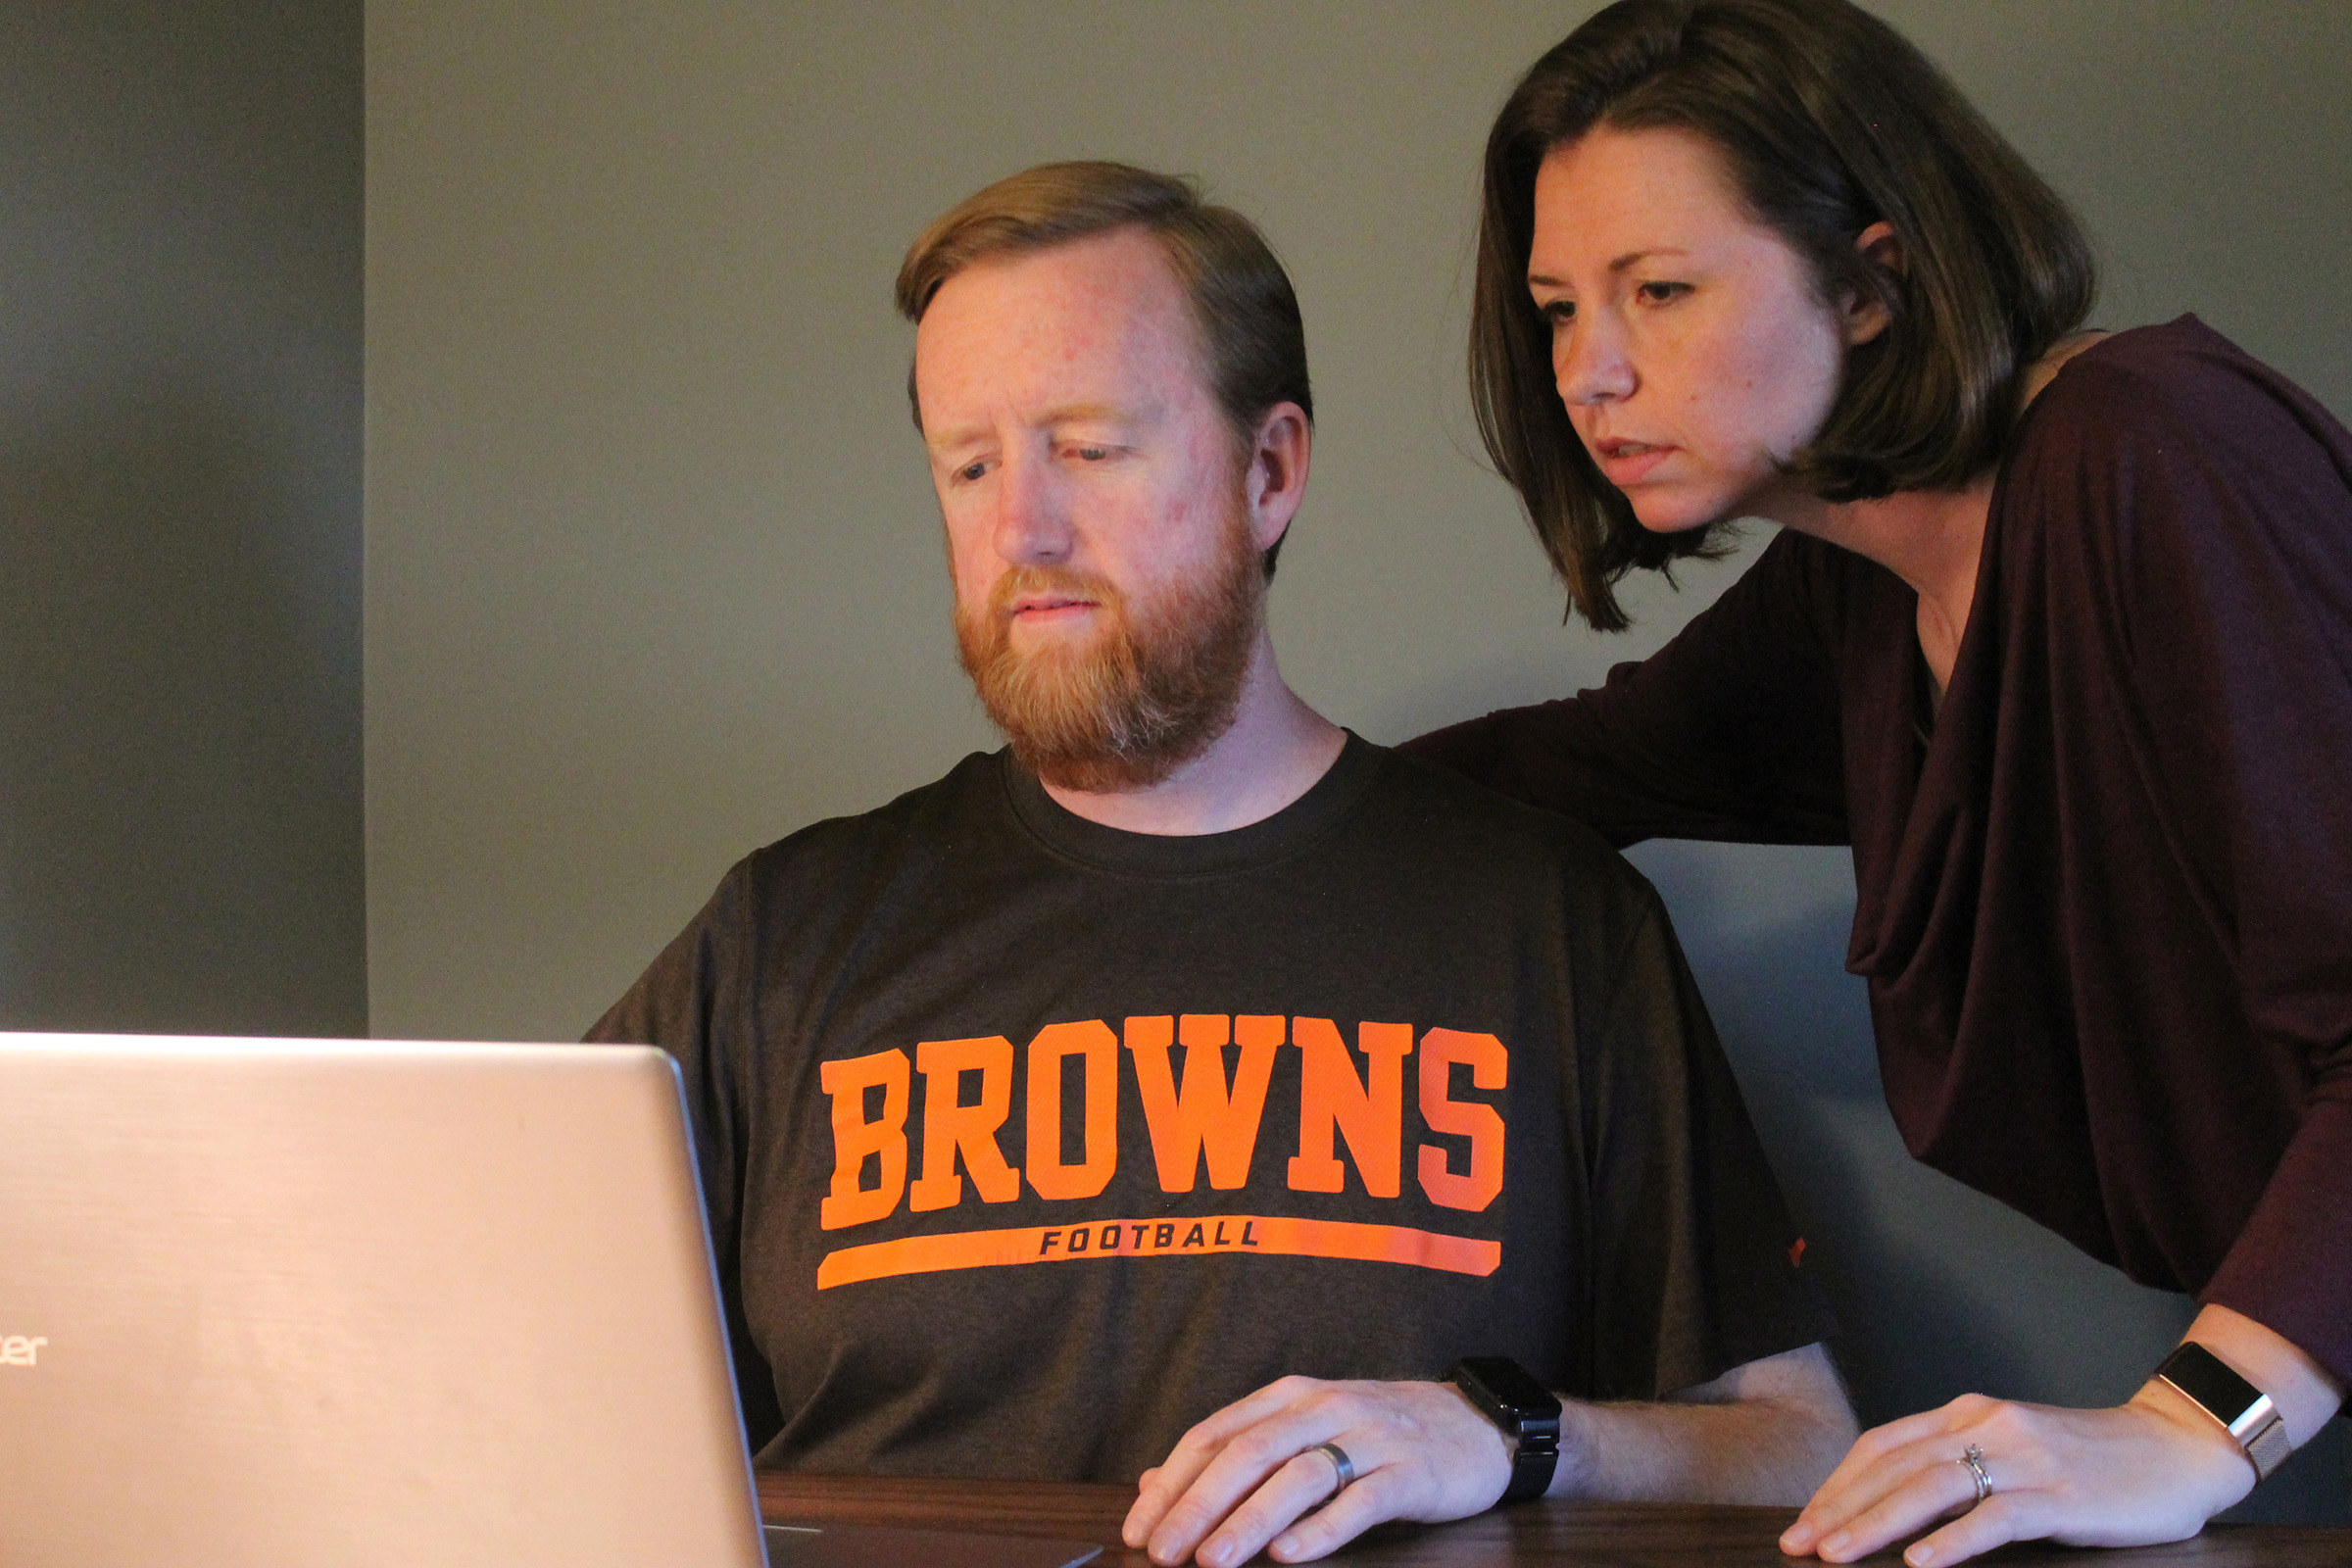 Tom Davis and his wife, Ashley, at home. Photo courtesy of Tom Davis.